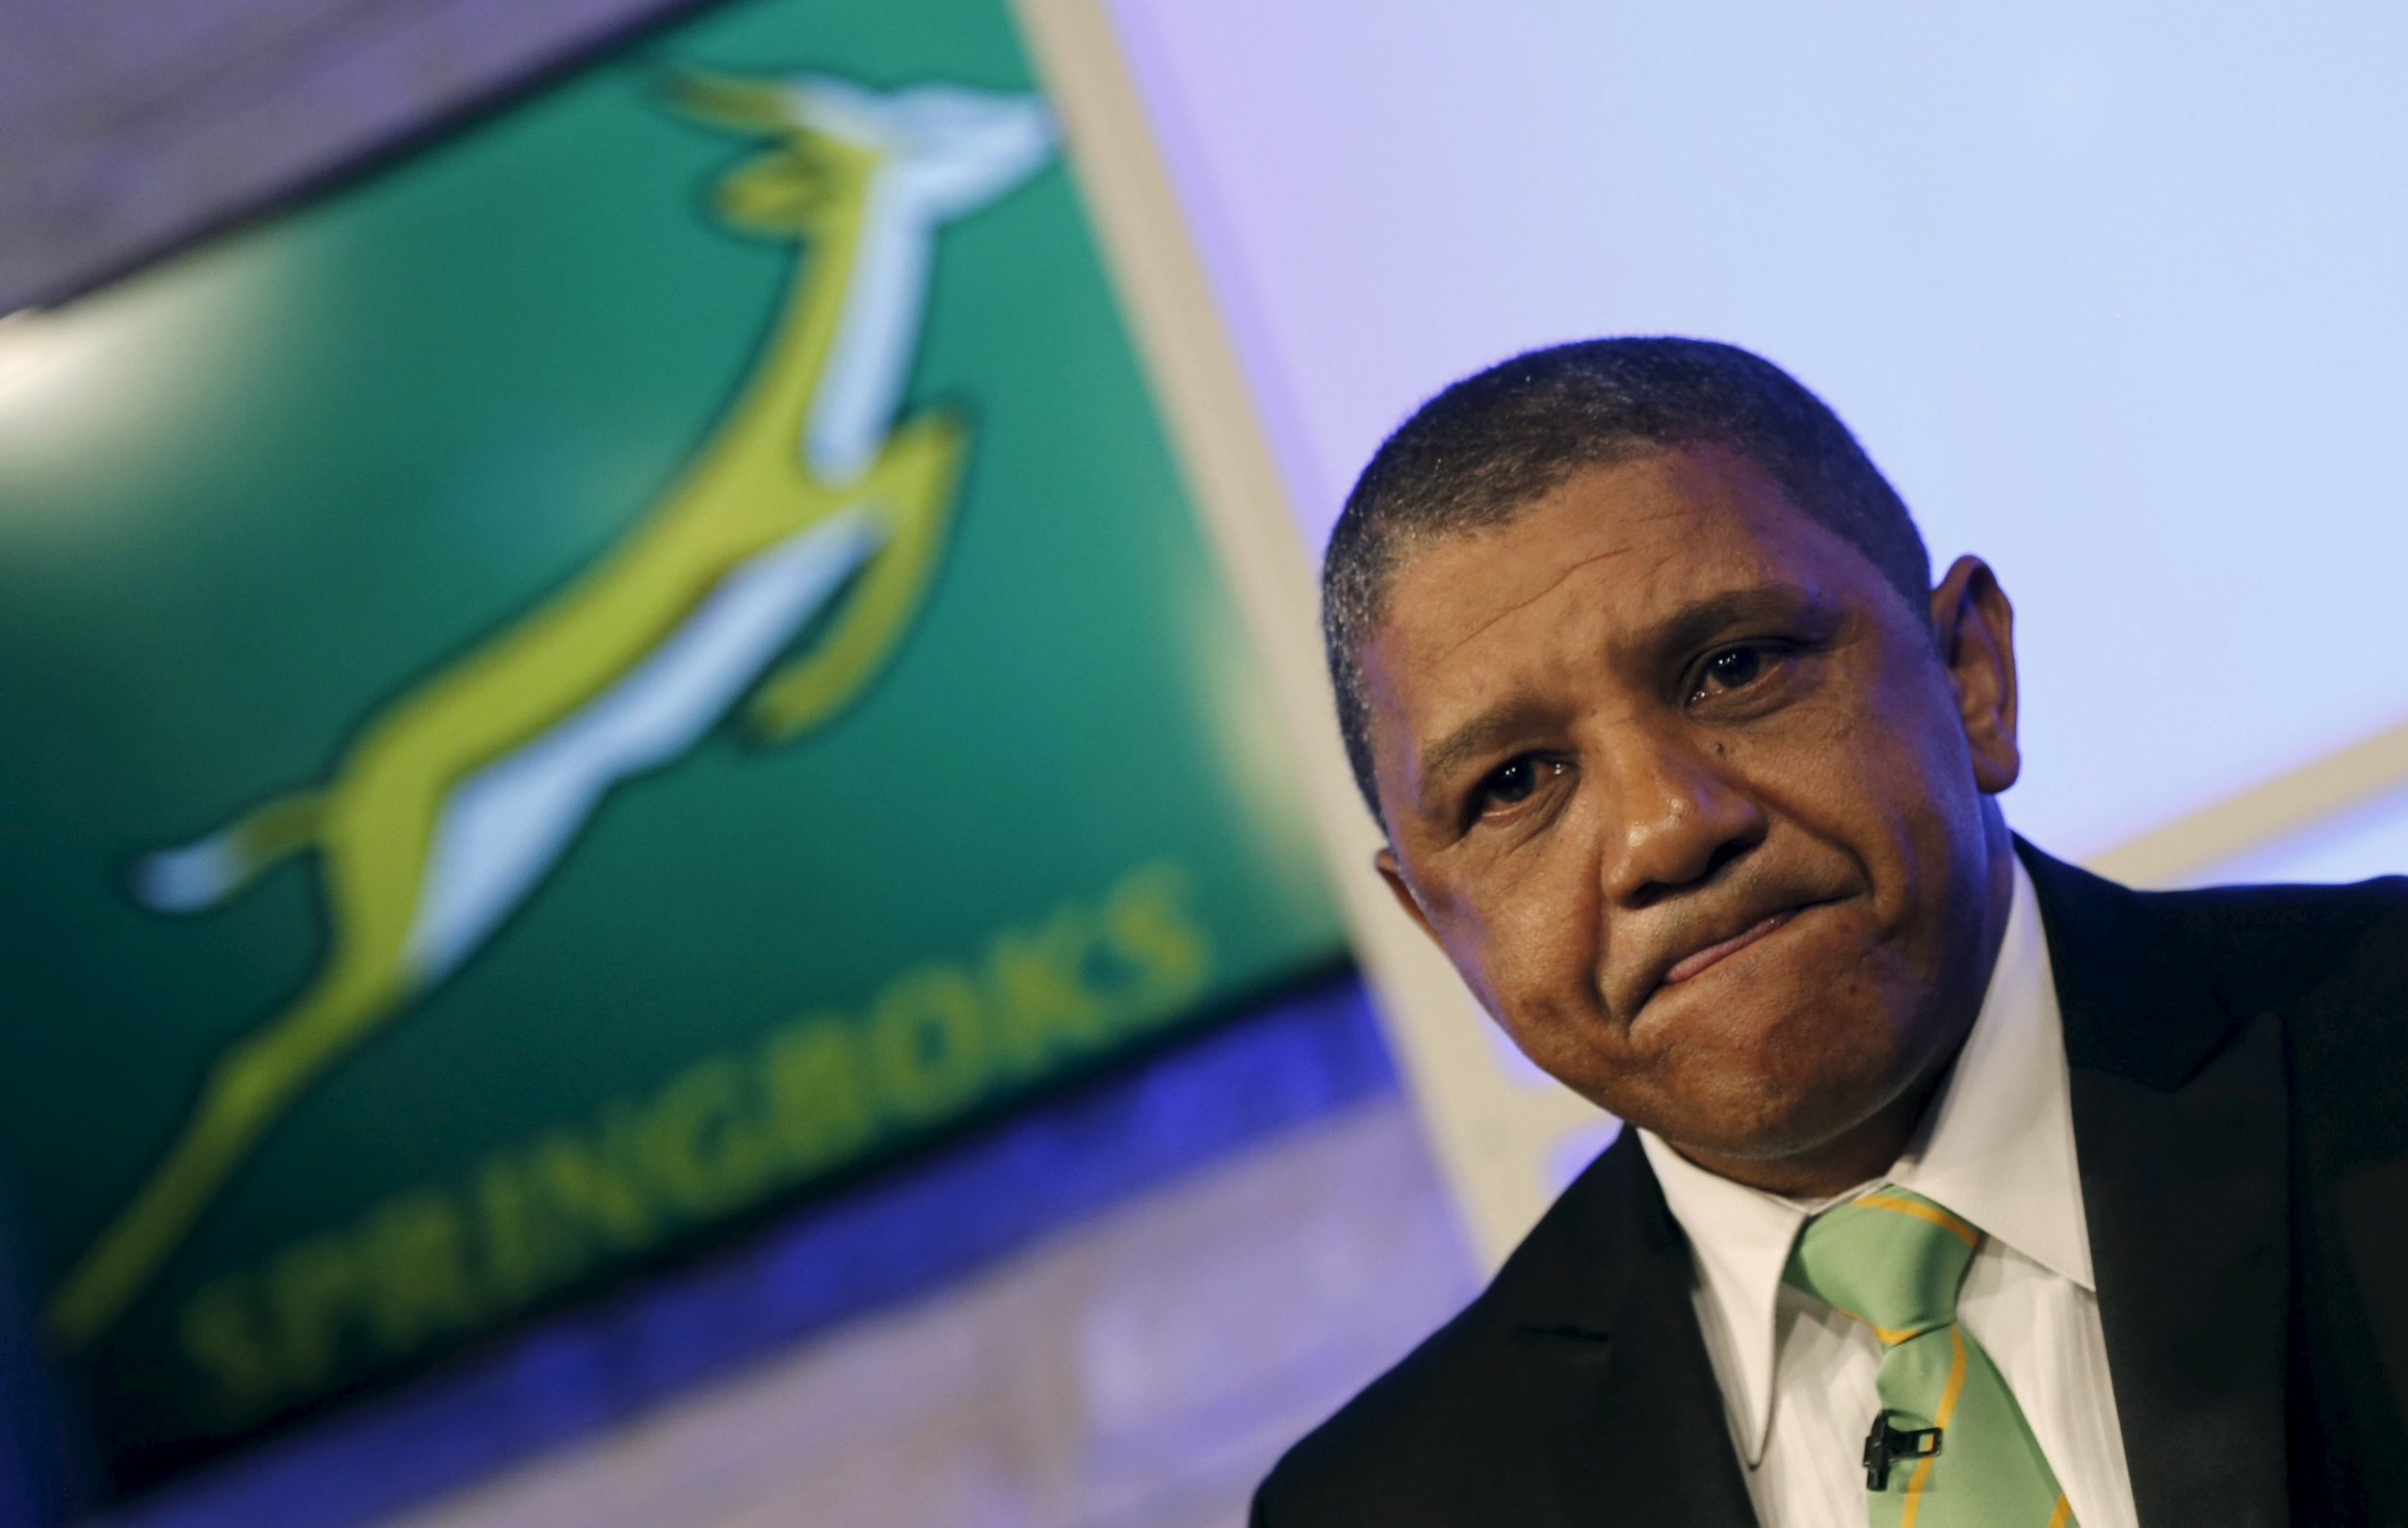 Allister Coetzee looks on after he was unveiled as the South Africa Springboks' new rugby coach in Randburg, outside Johannesburg, Coetzee's squad announcement was met with much excitement and the hope of a dynamic brand of rugby.Image supplied by Action Images / Siphiwe Sibeko.